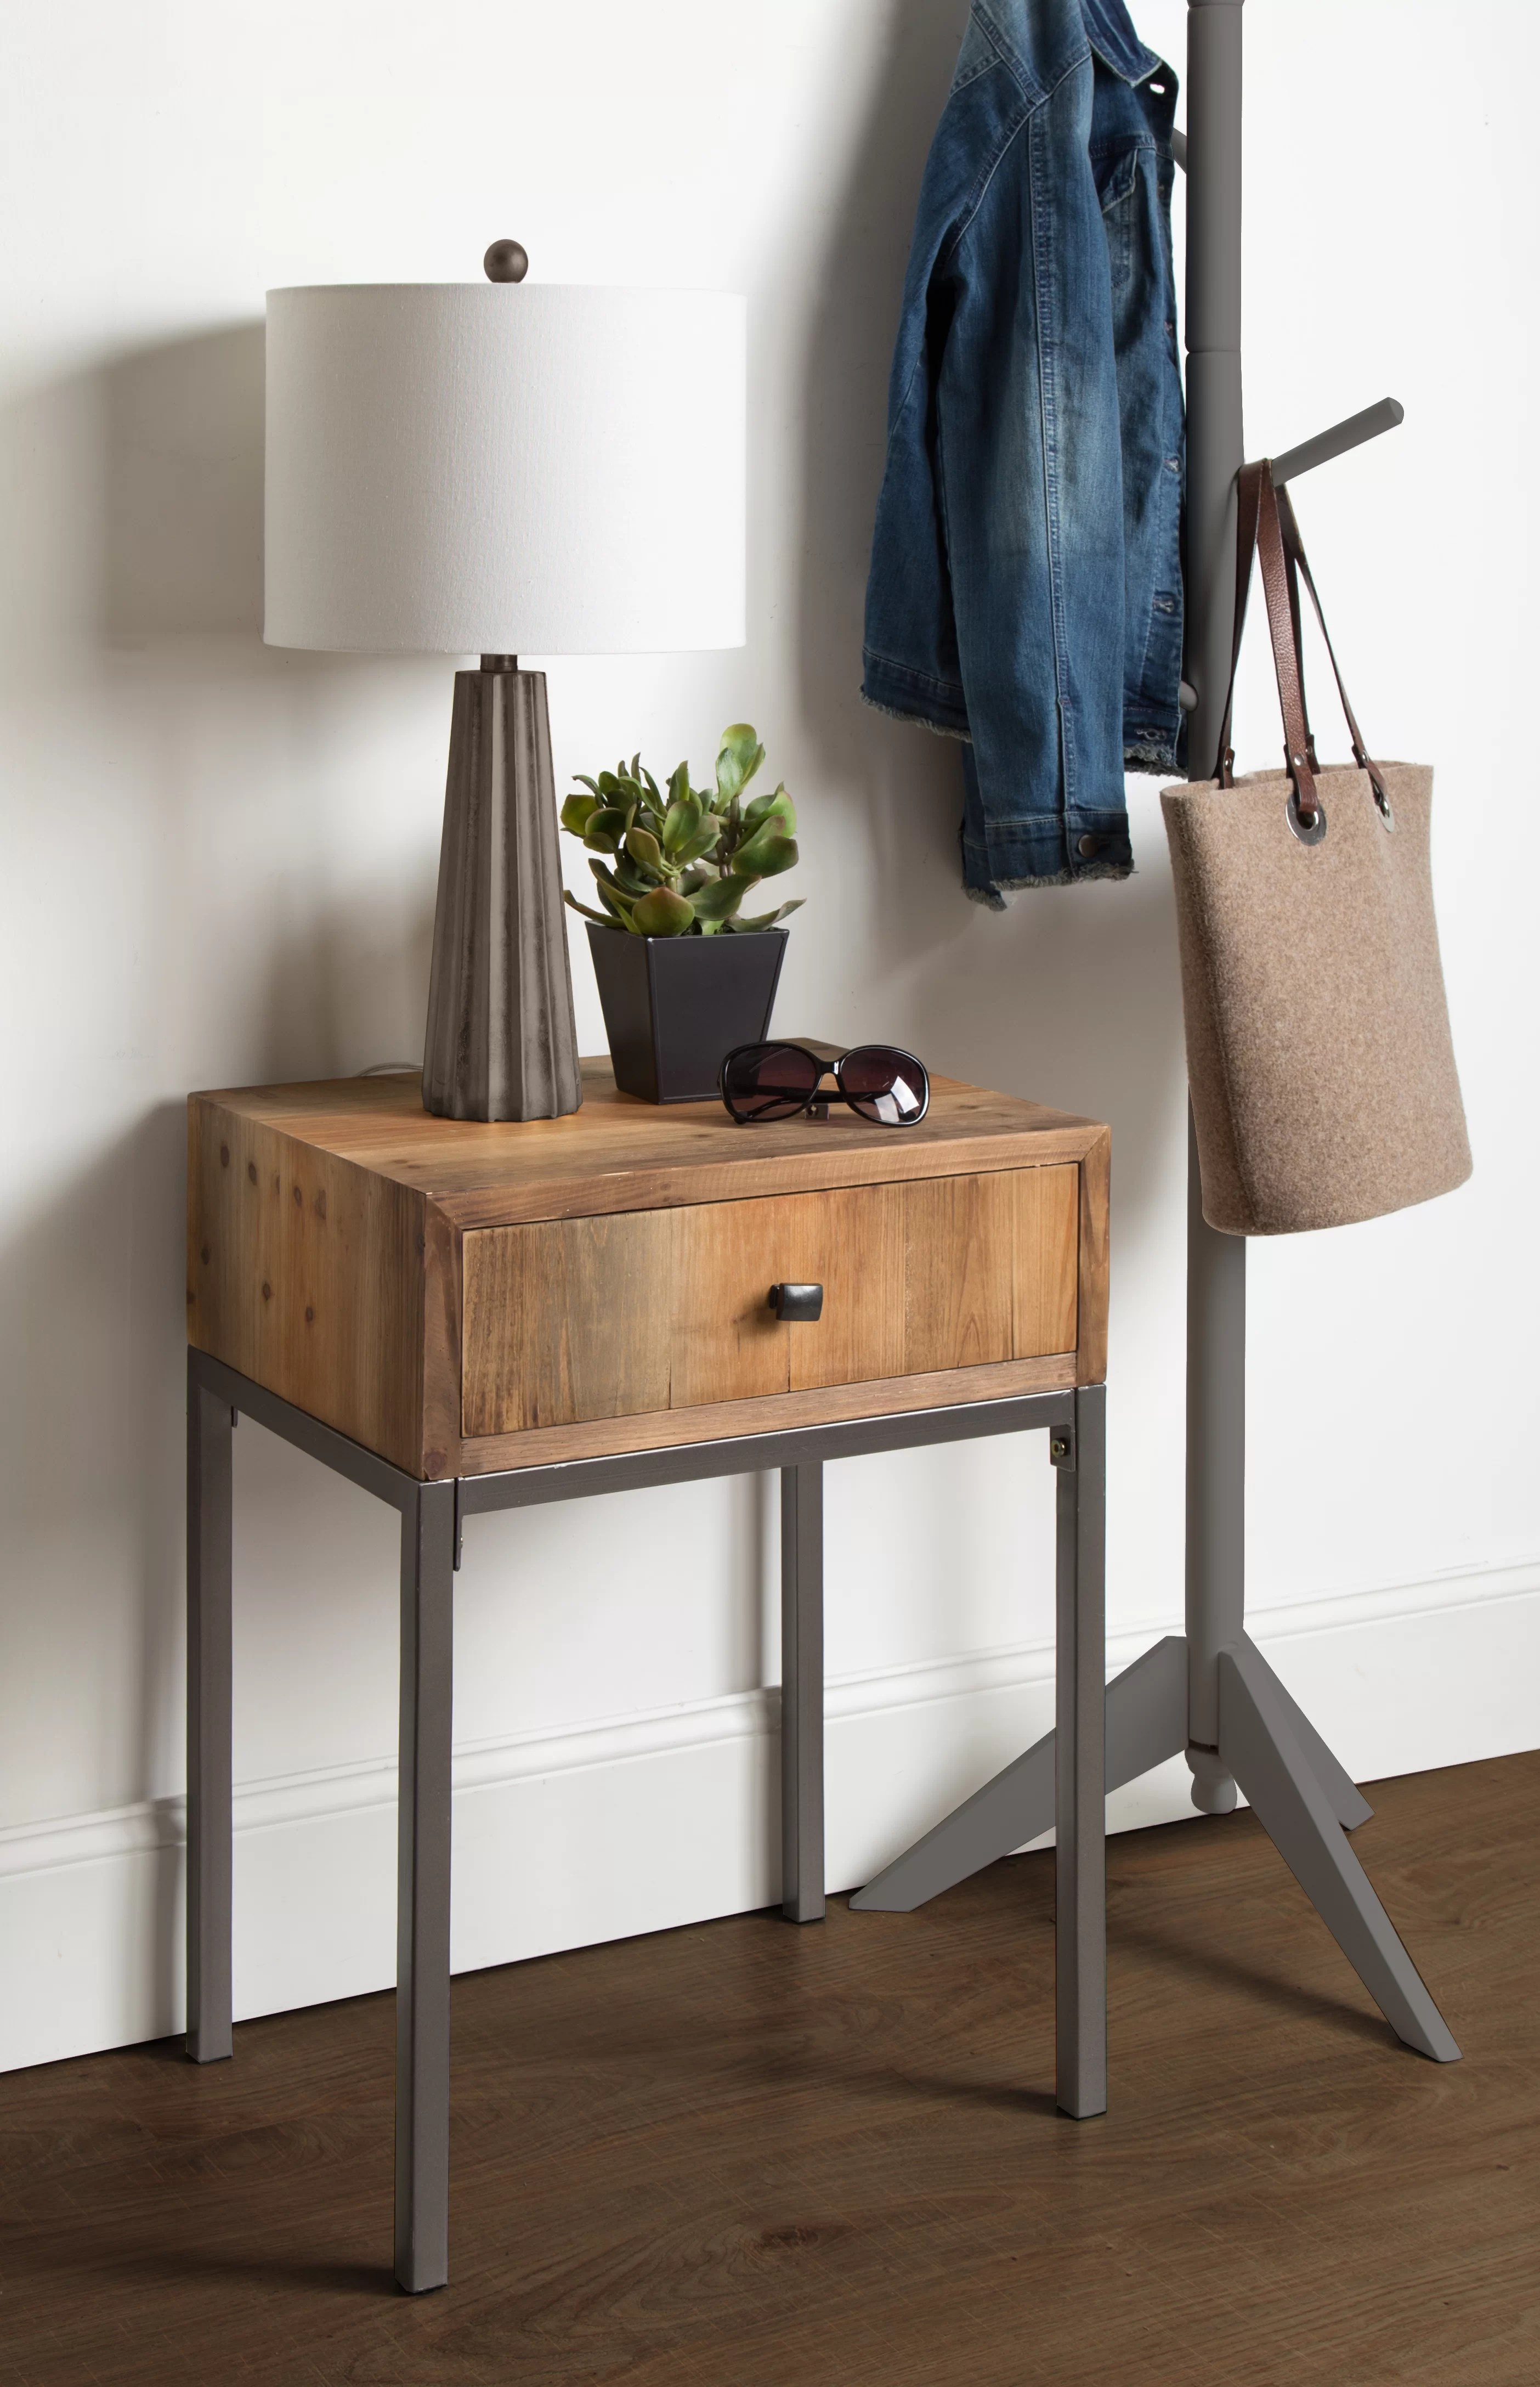 Rustic Wood End Table Pruitt Wood End Table With Storage